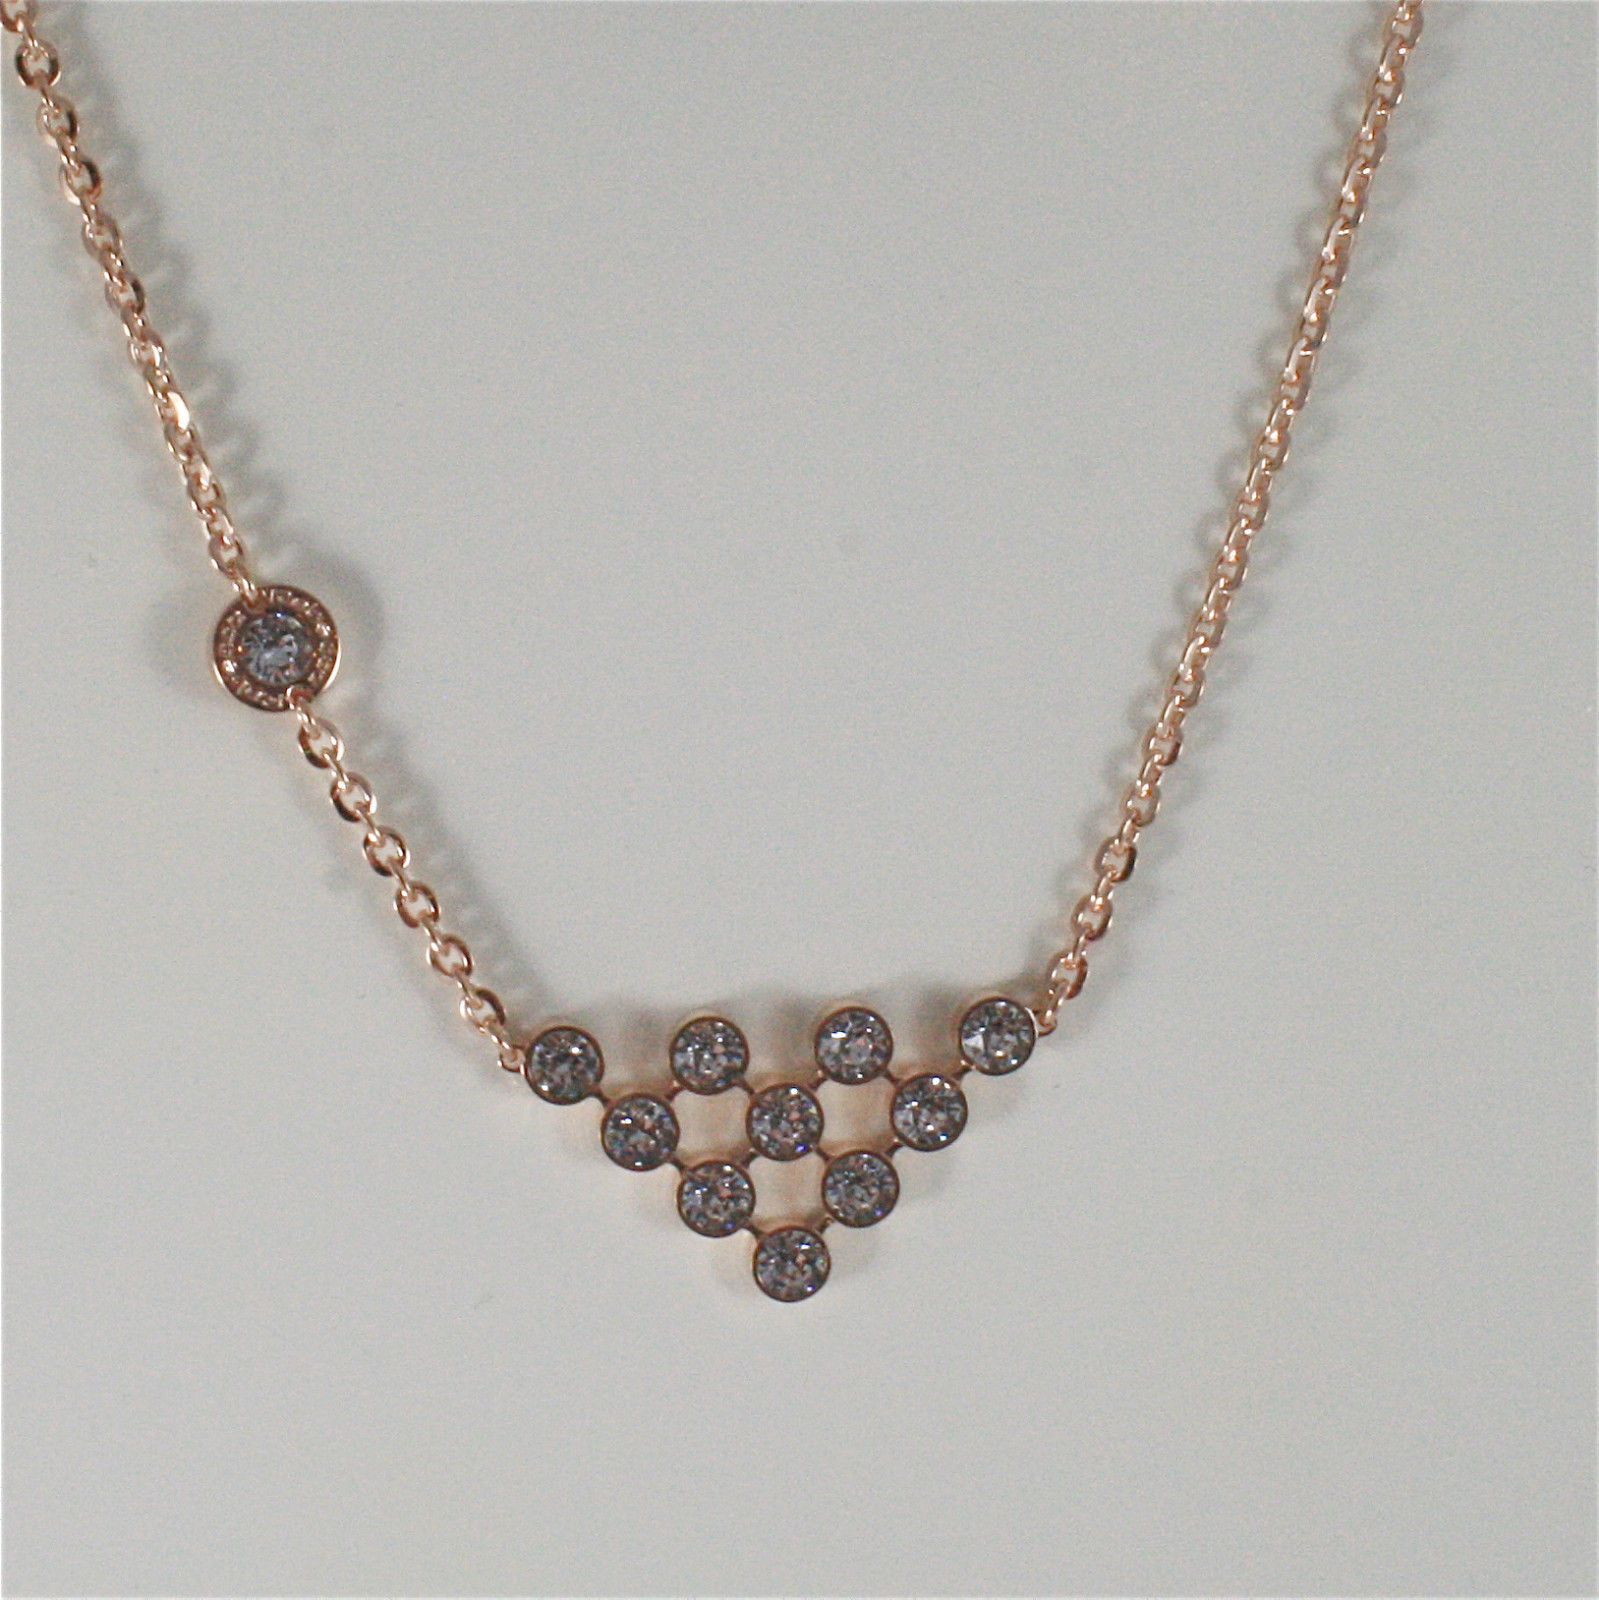 ROSE GOLD PLATED BRONZE REBECCA CLUSTER NECKLACE BPBKRB05 MADE IN ITALY 18.90 IN